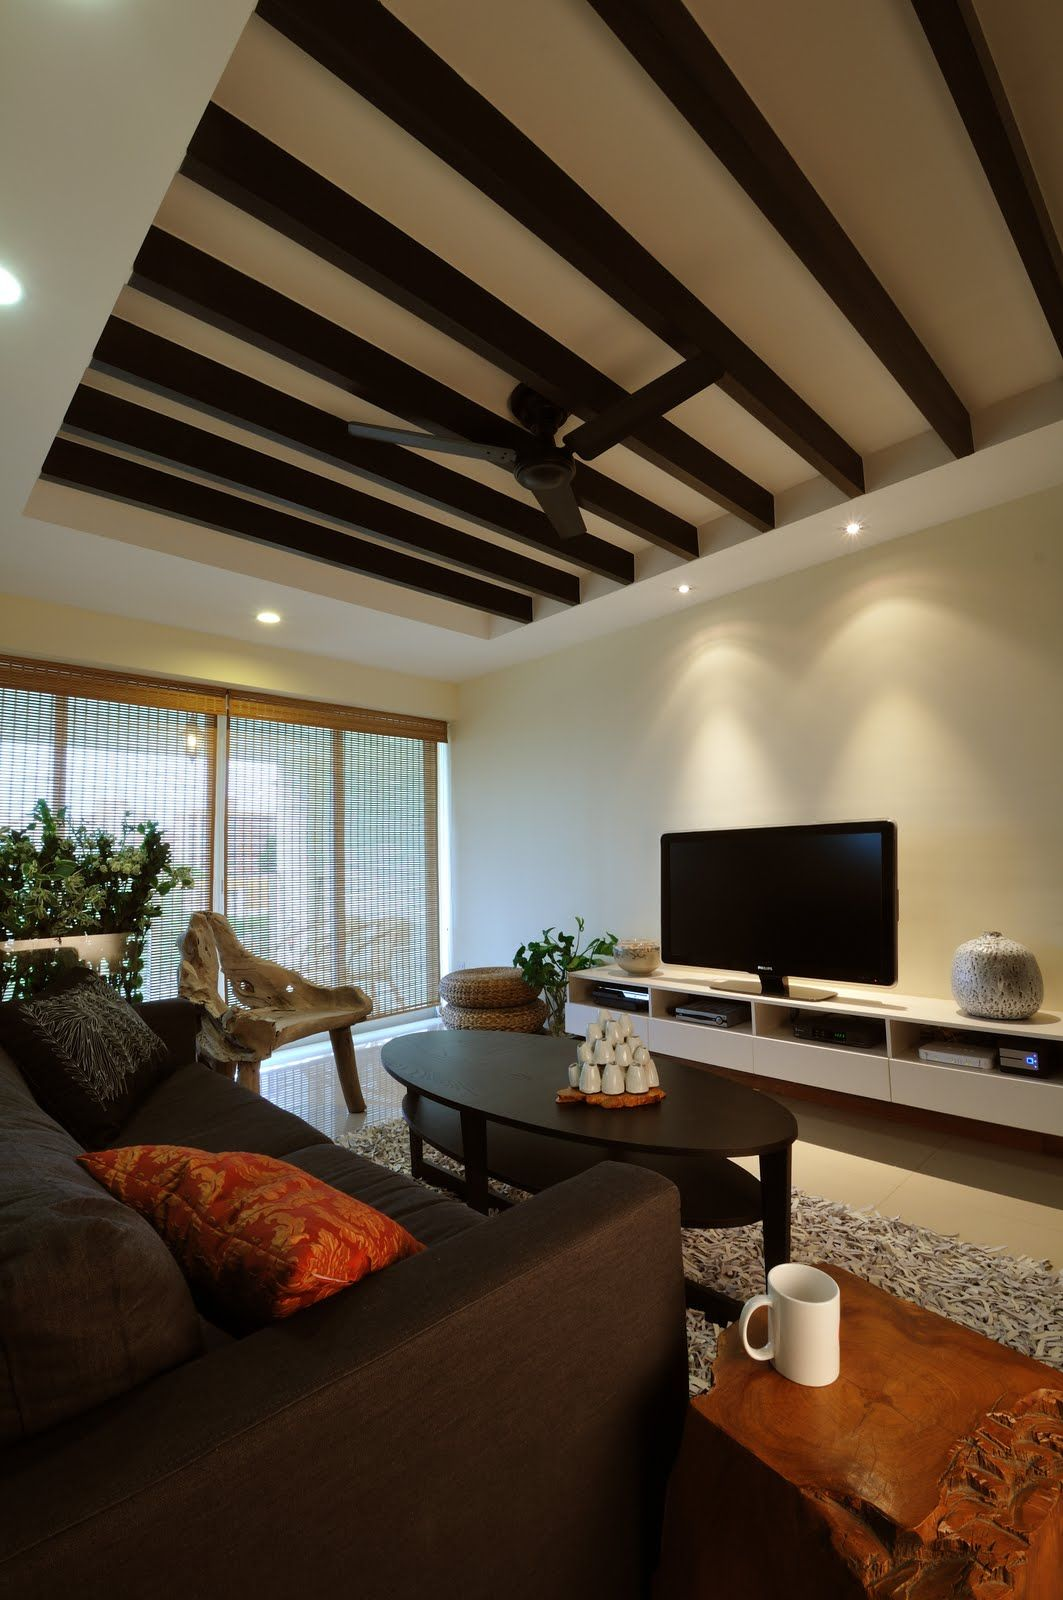 Renovation Ideas For 4a Hdb Living Room: Balinese Interior, Home Living Room